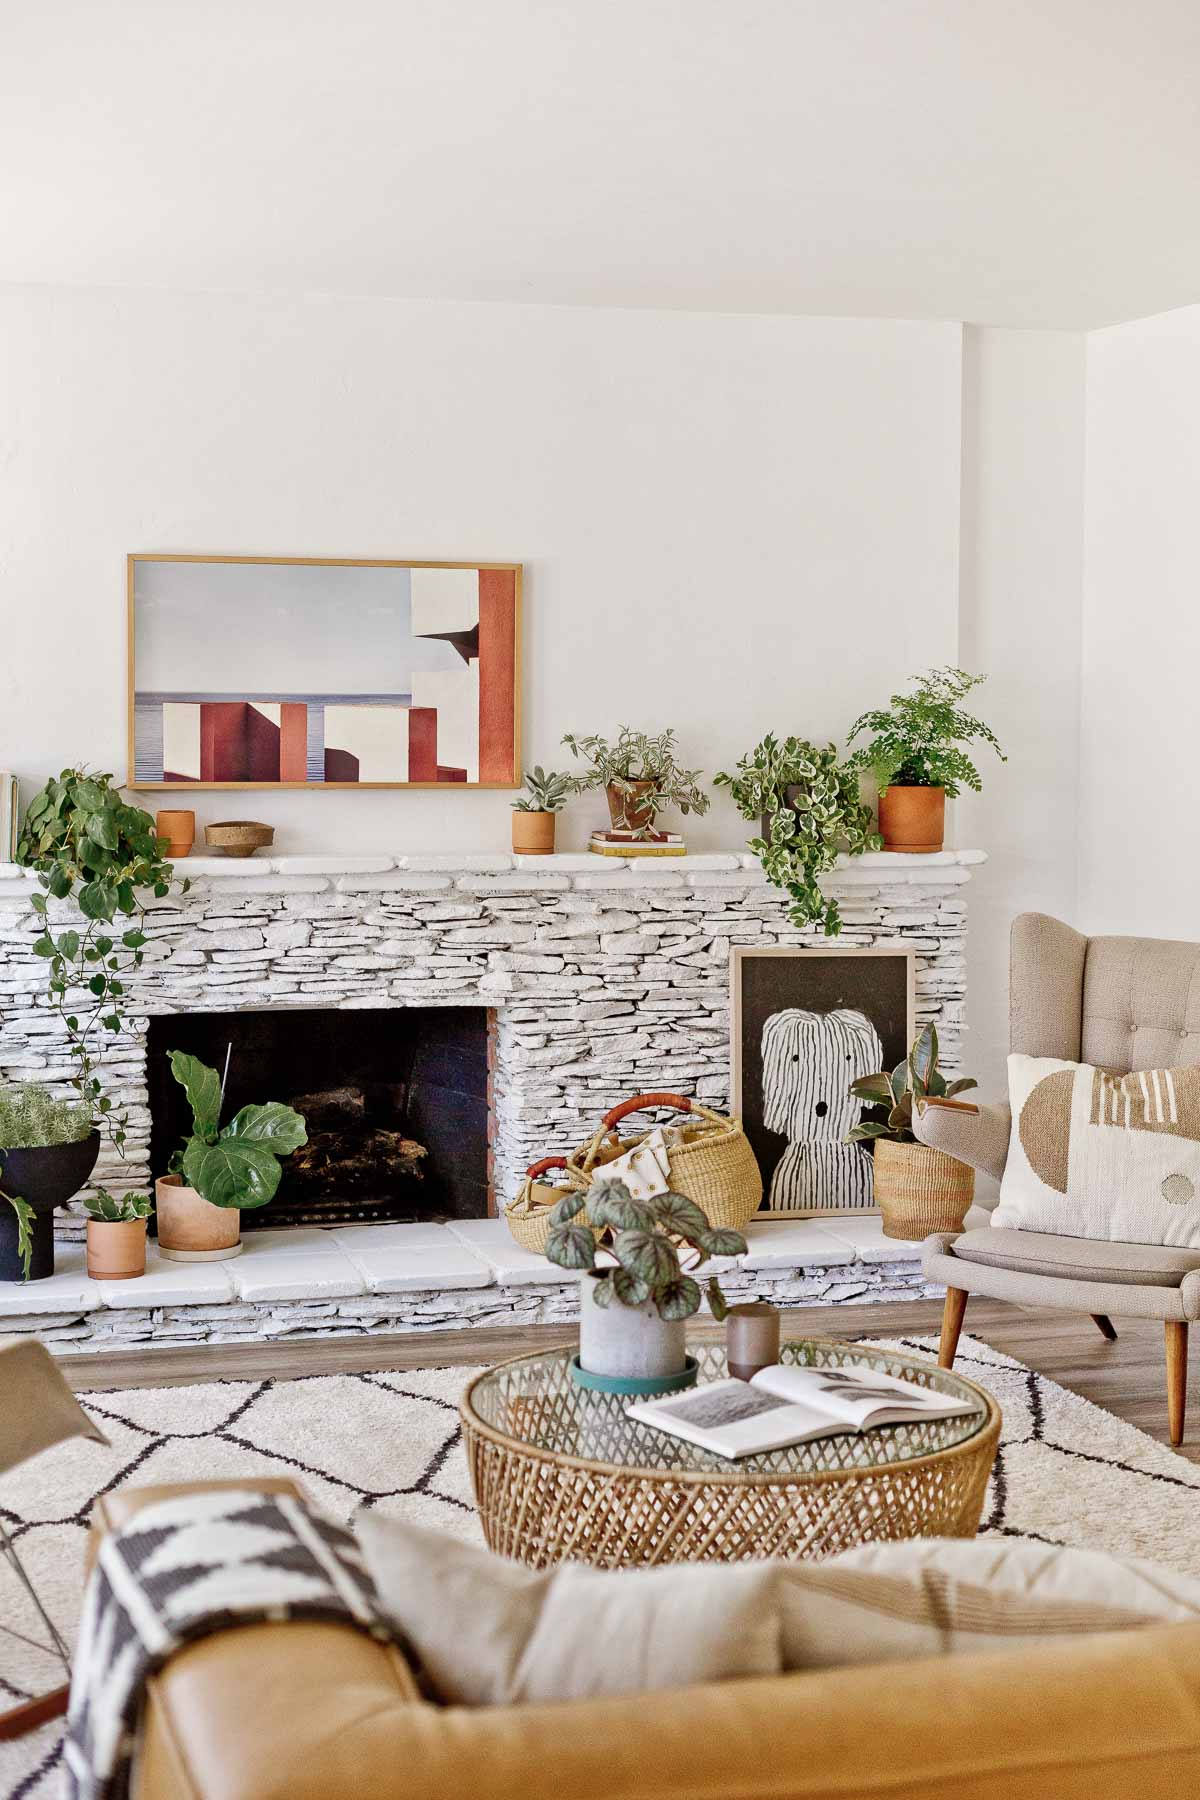 painted white stone fireplace with plants and large neutral artwork